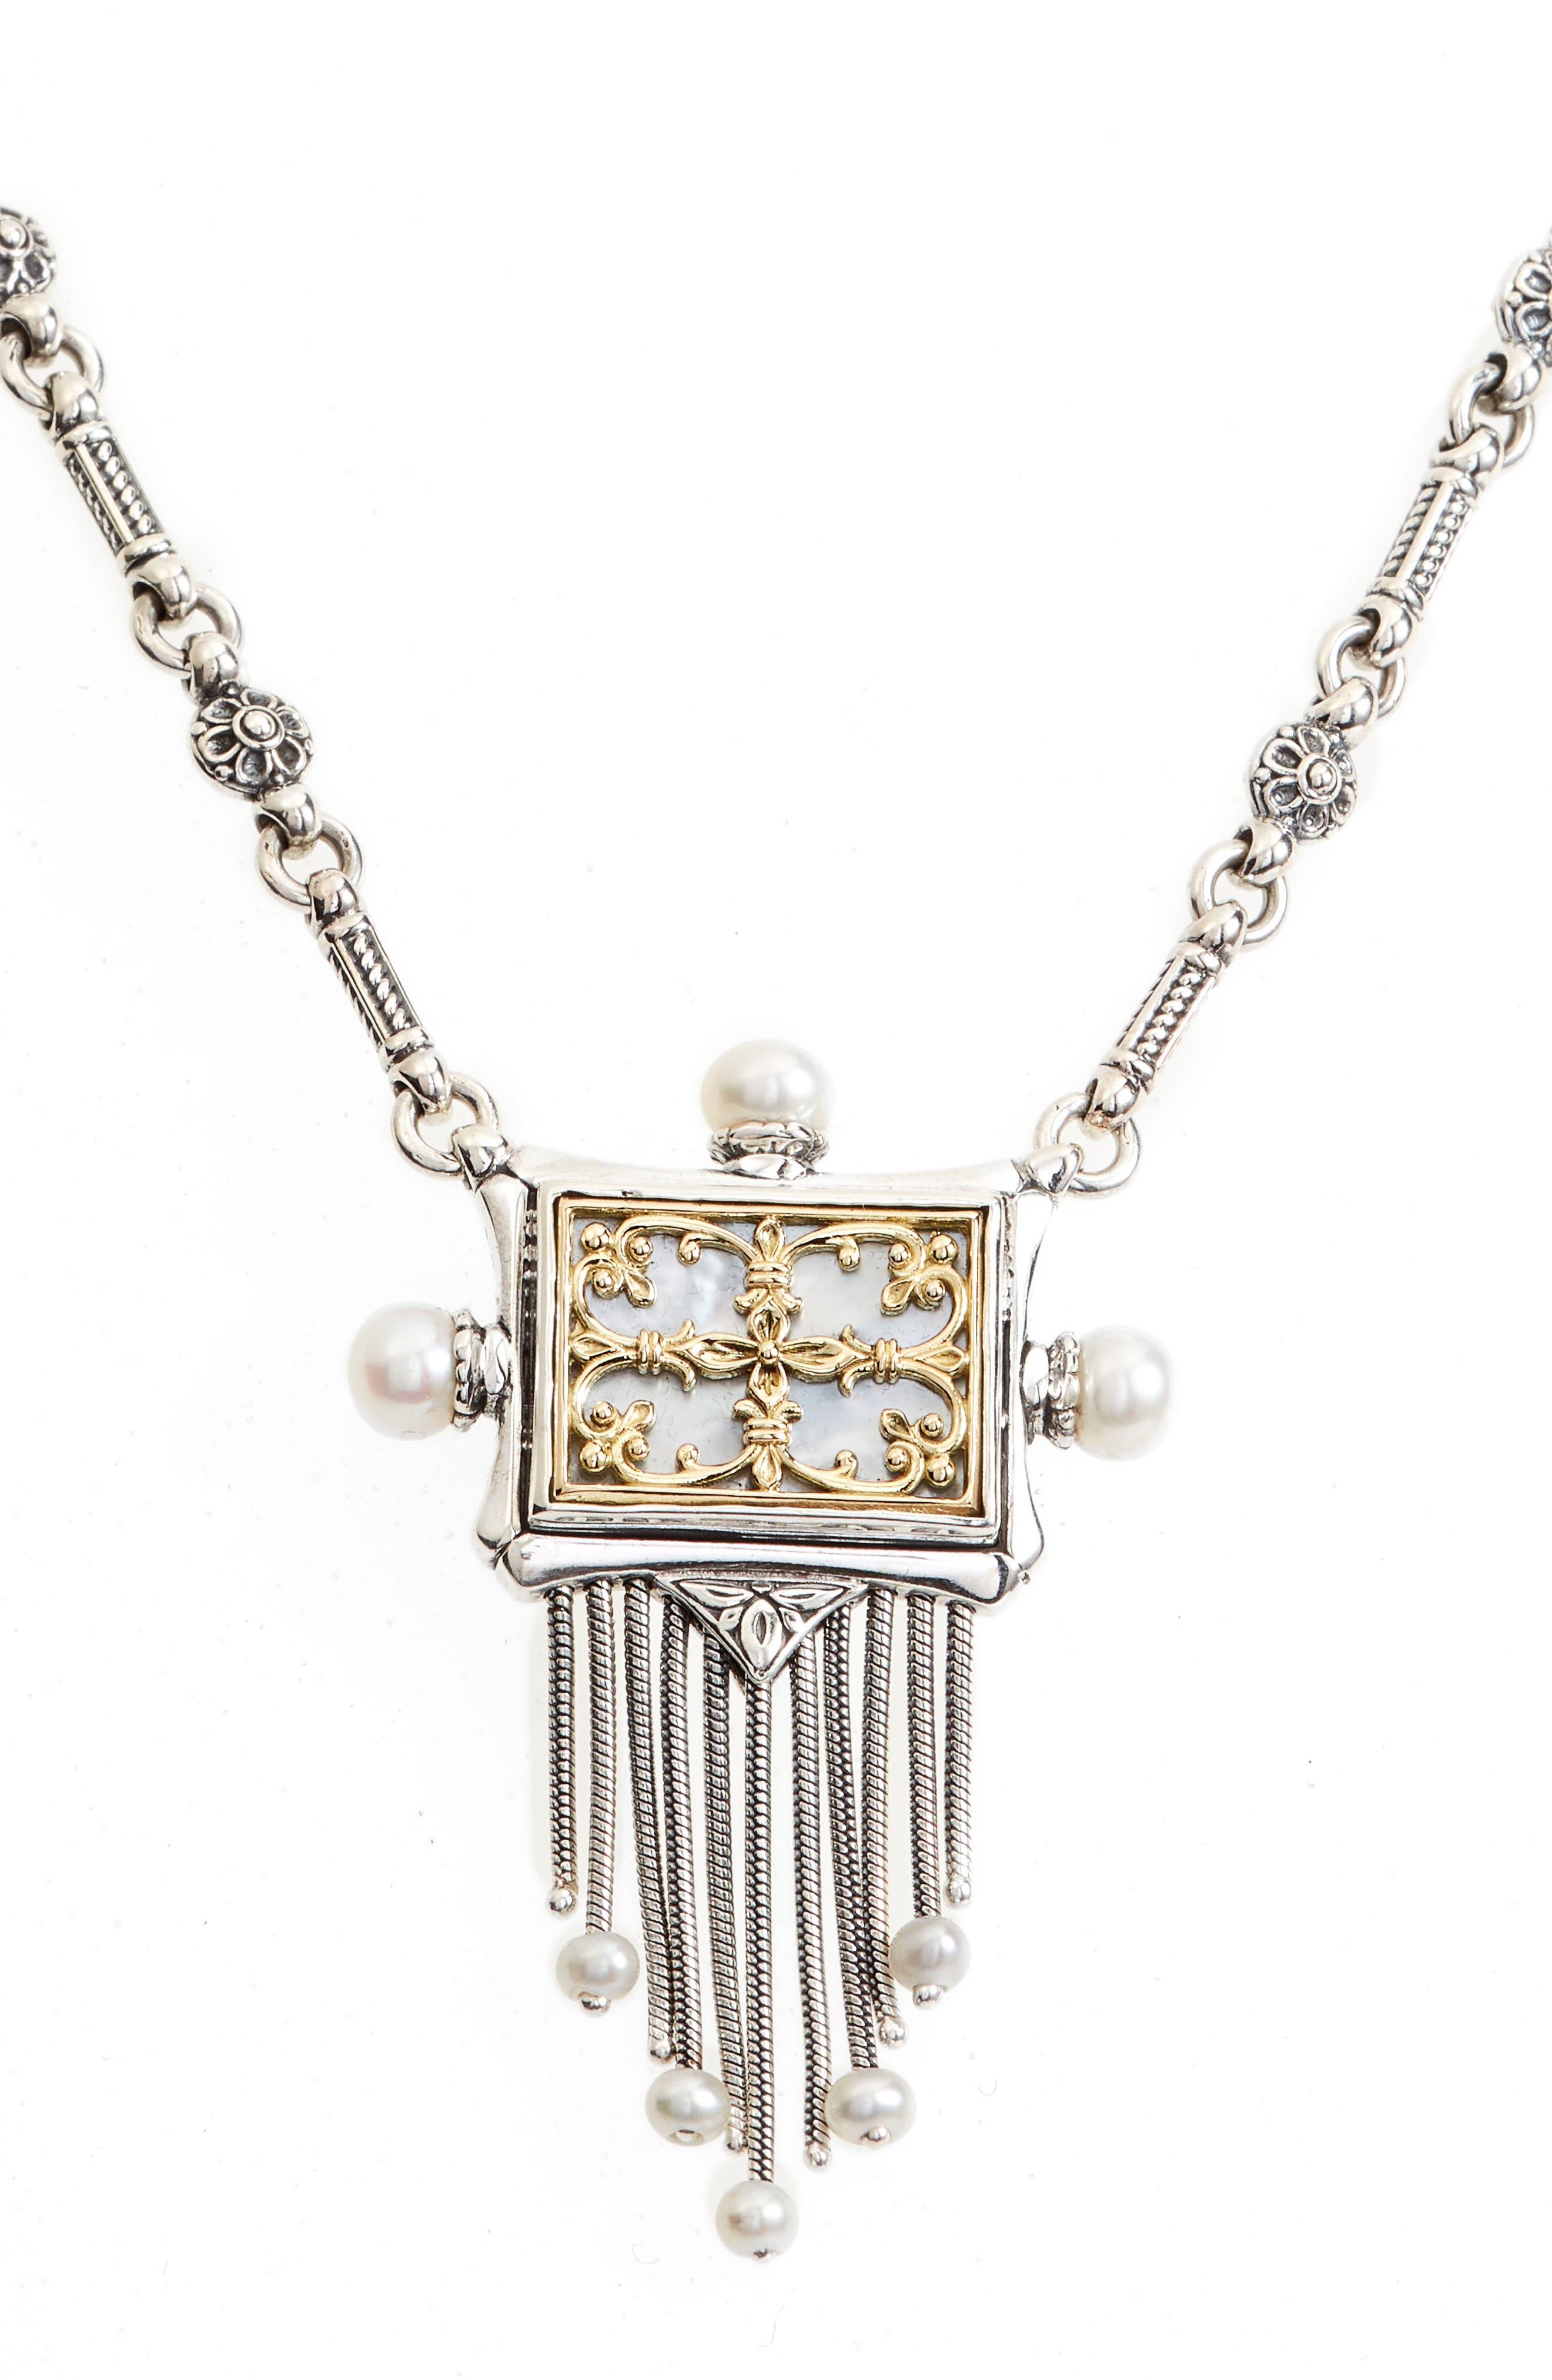 Etched Sterling Silver & Pearl Fringe Pendant,                         Main,                         color,